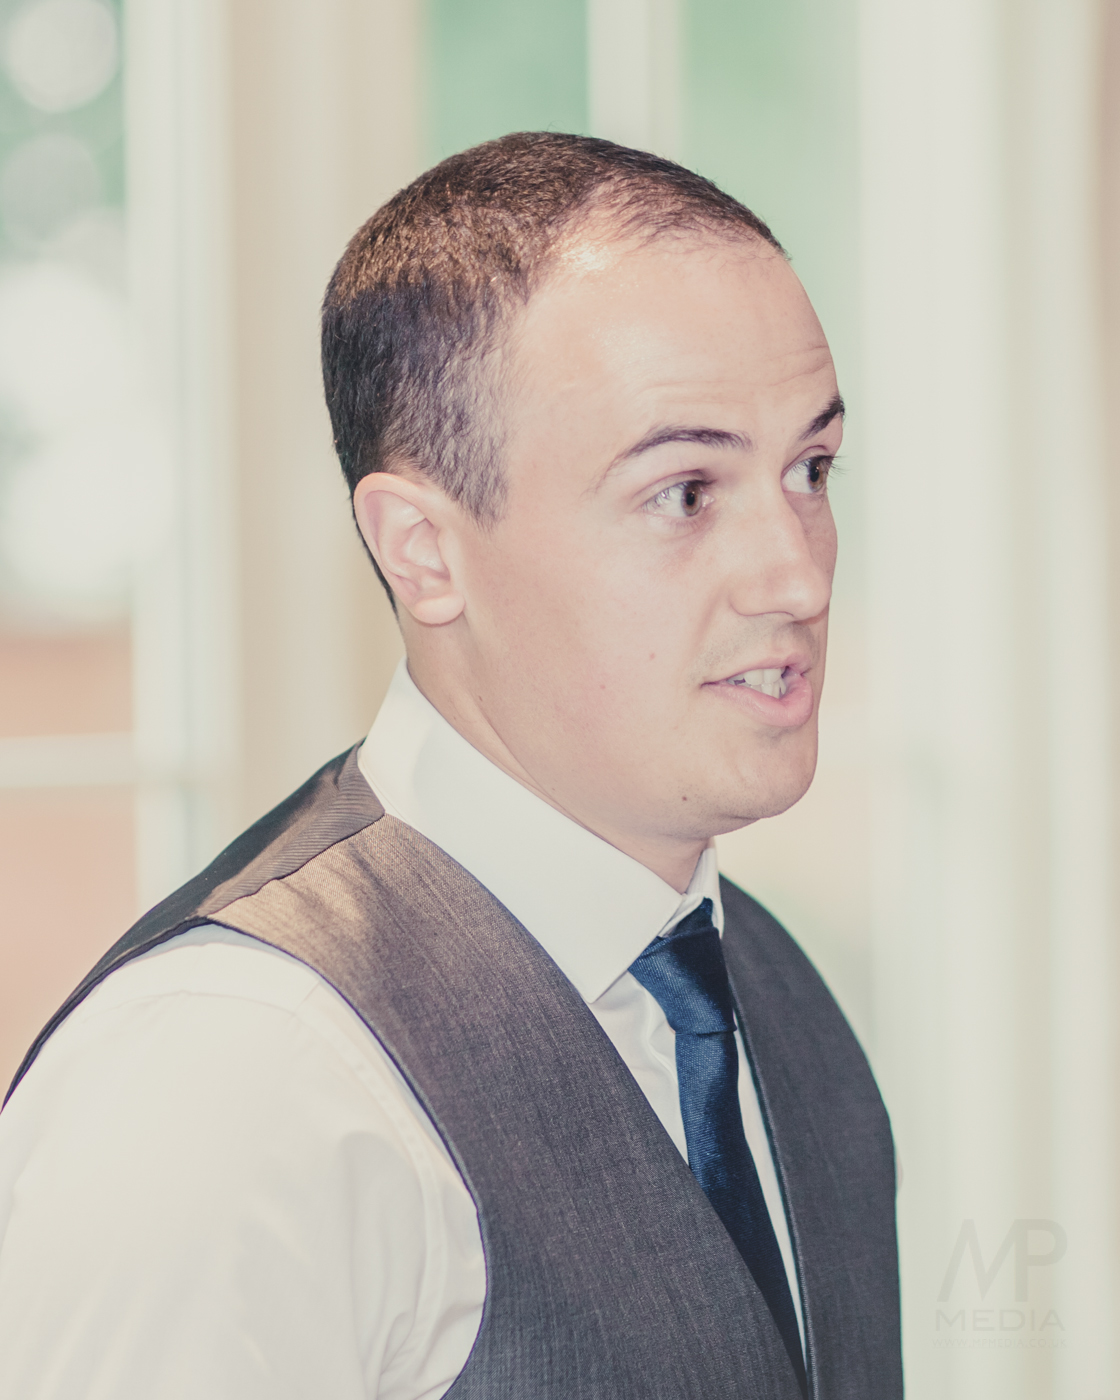 535 - Chris and Natalies Wedding (MAIN) - DO NOT SHARE THIS IMAGES ONLINE -4820.JPG